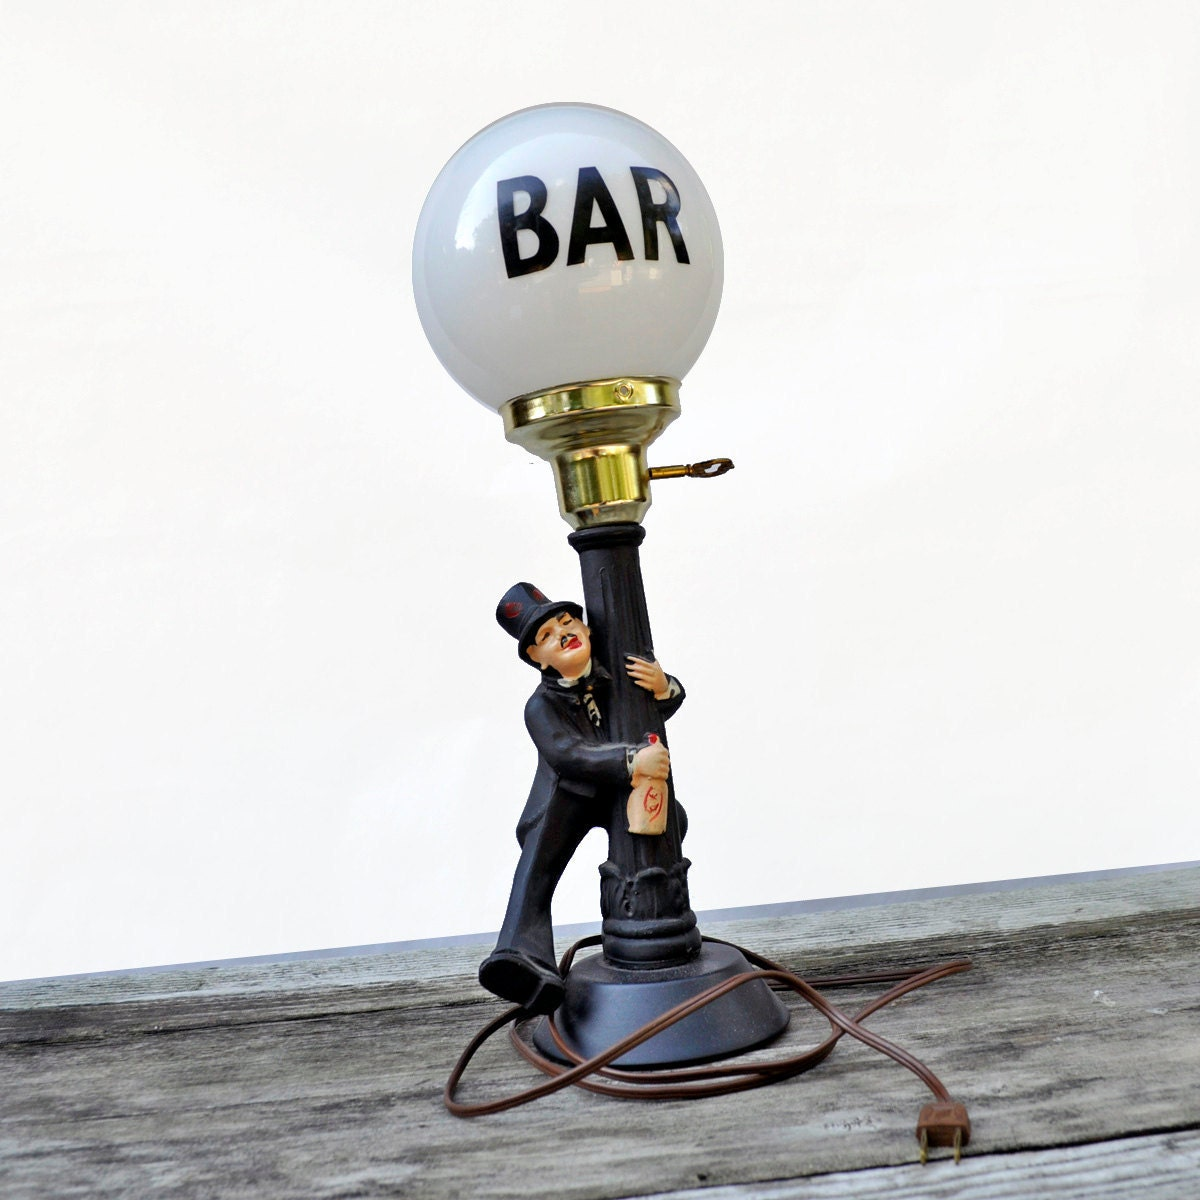 Post: Vintage Bar Lamp Drunk Bum On Lamp Post